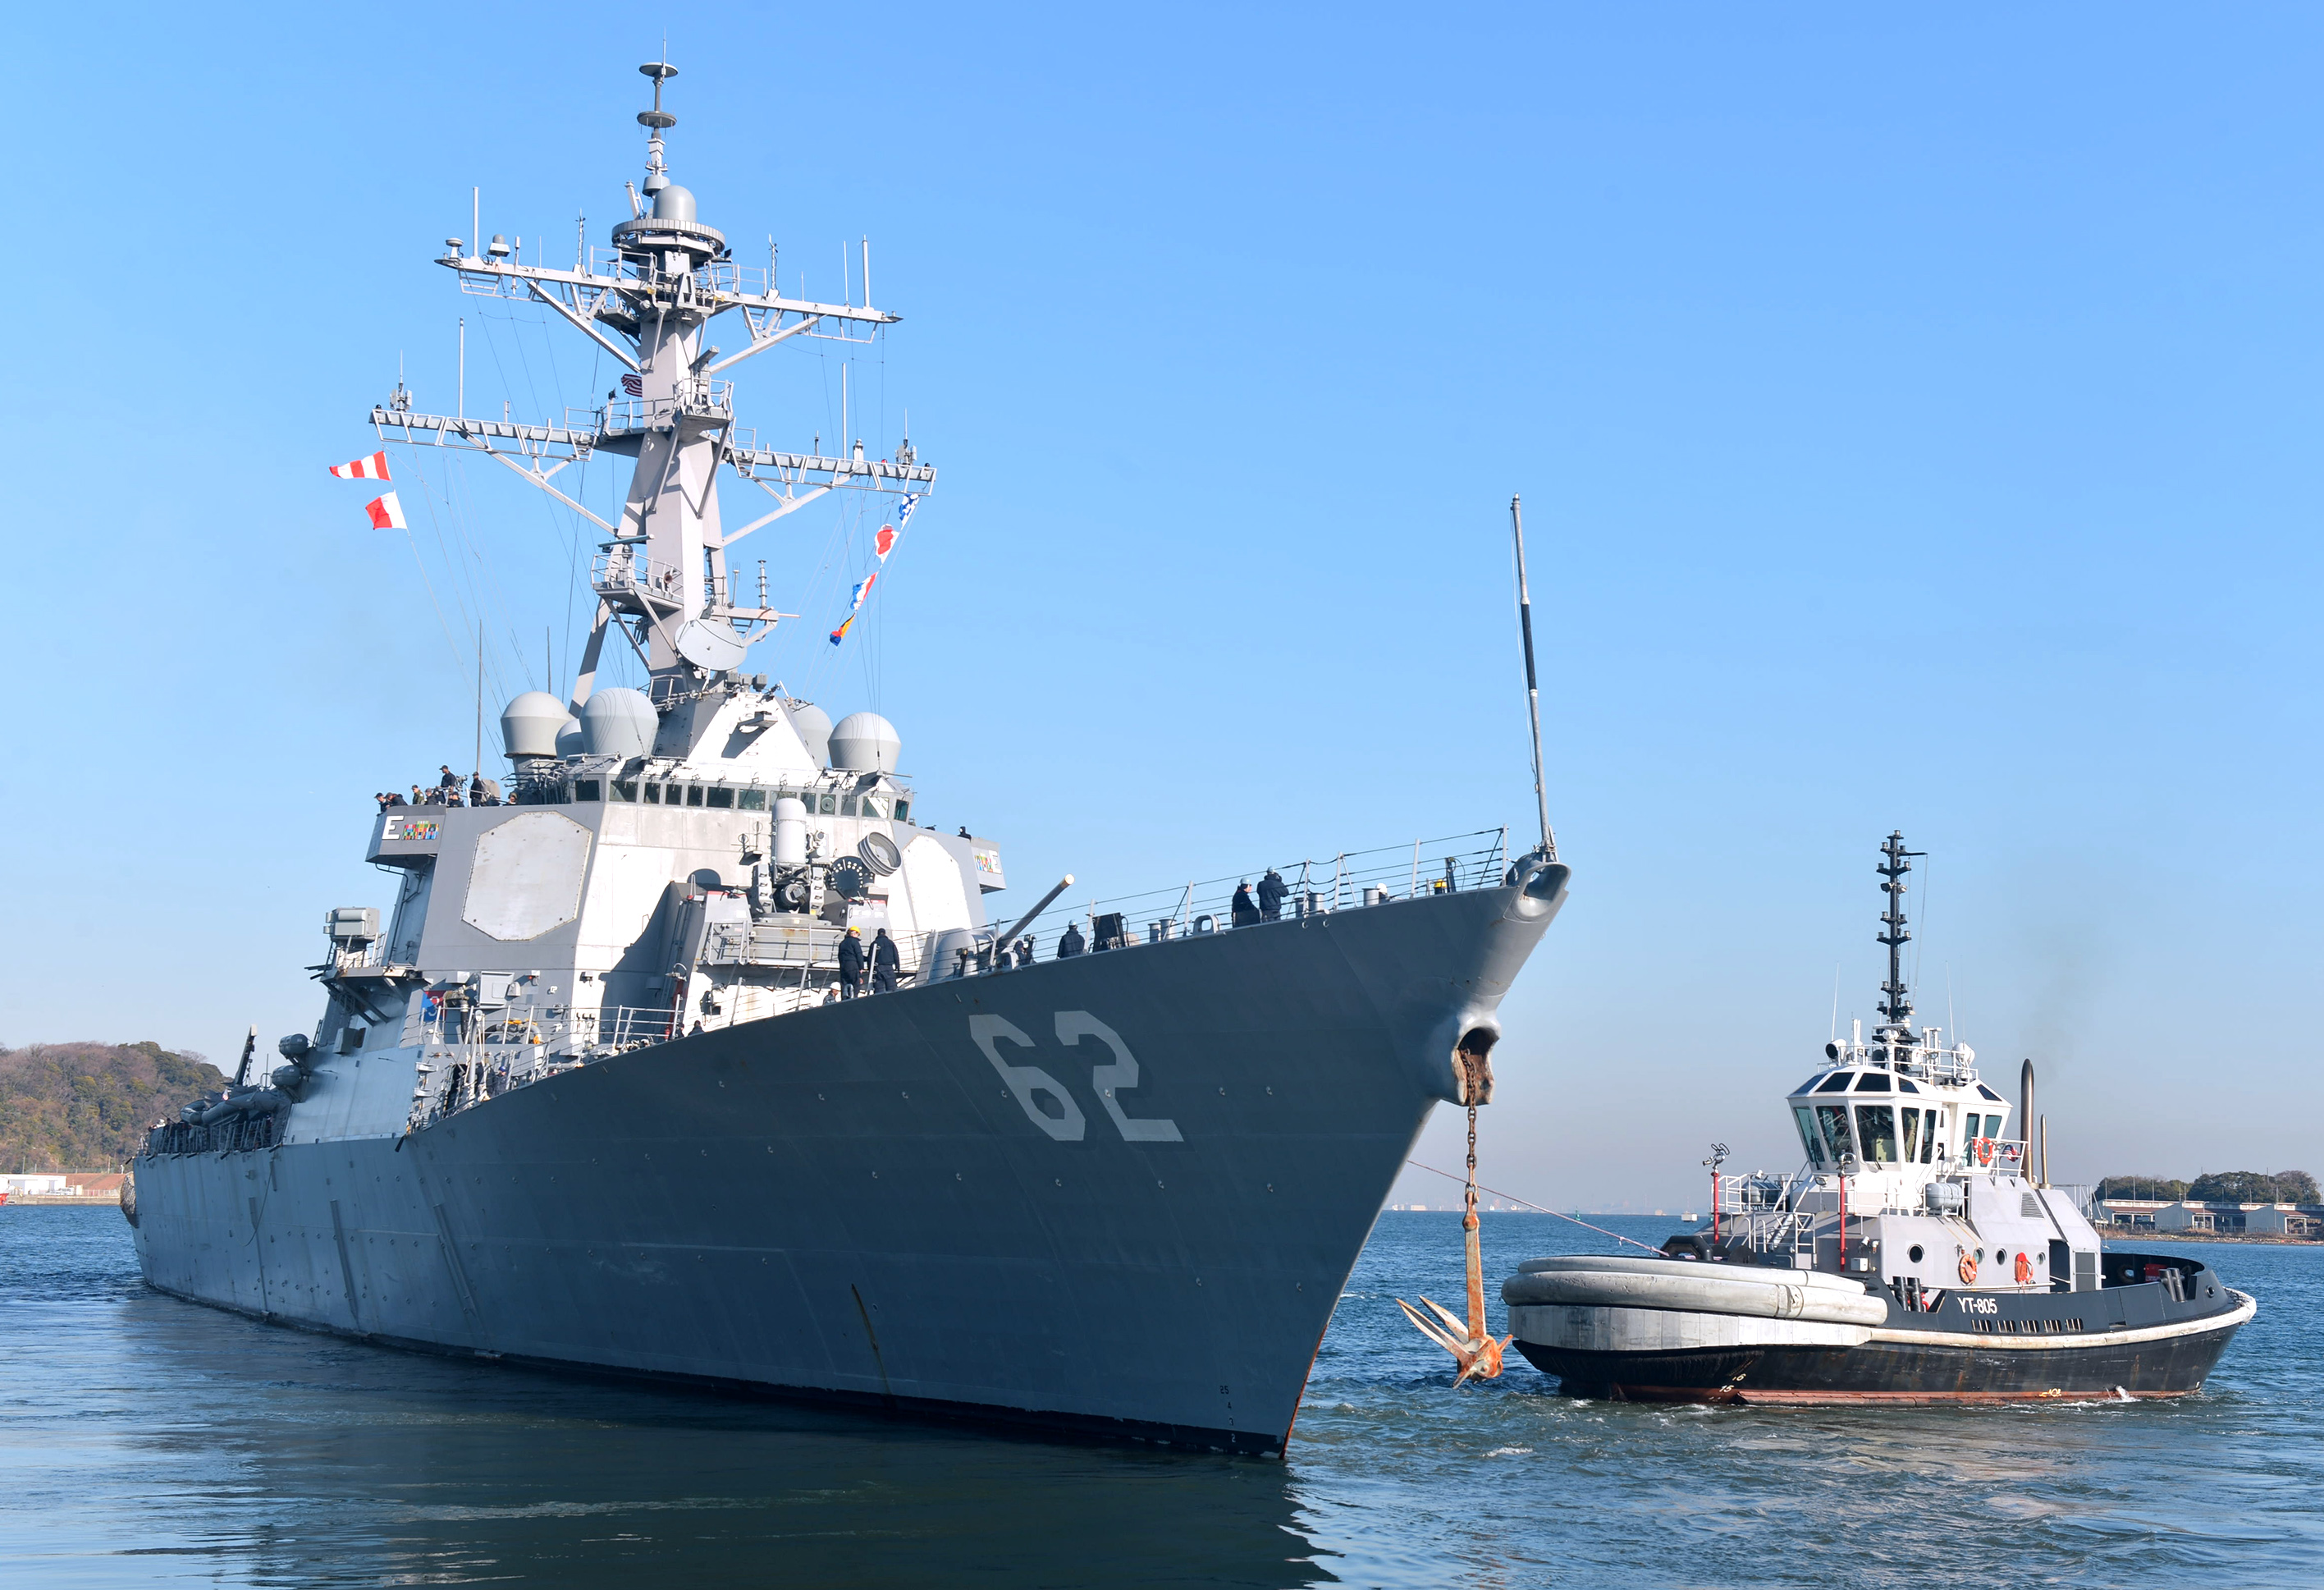 USS FITZGERALD DDG-62 am 16.01.2015 in Yokosuka, Japan Bild: U.S. Navy